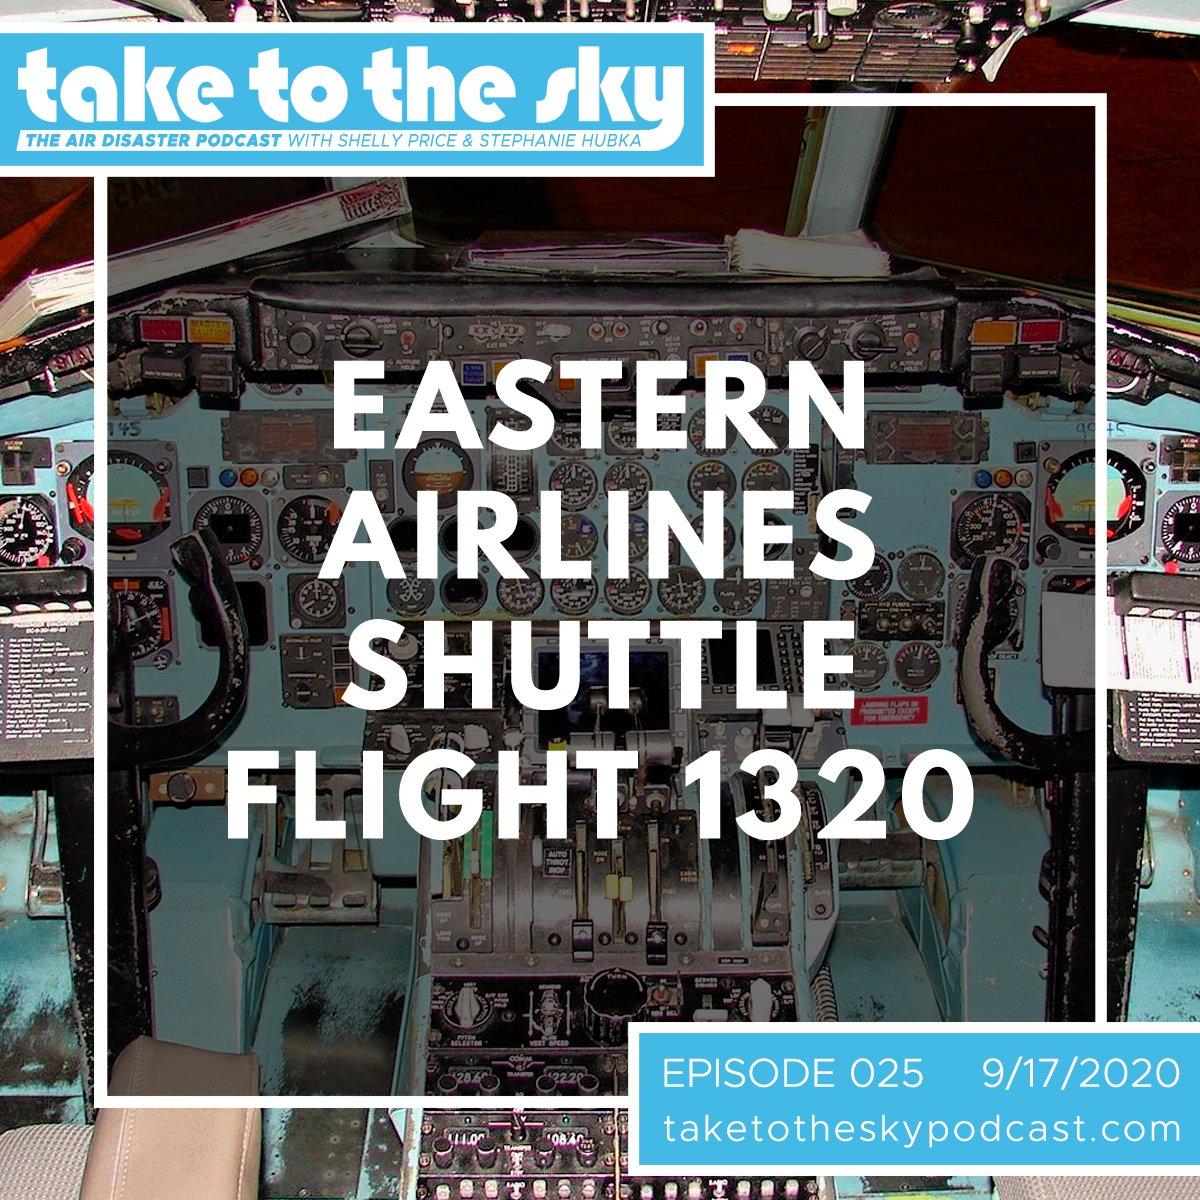 Take to the Sky Episode 025: Eastern Airlines Shuttle Flight 1320